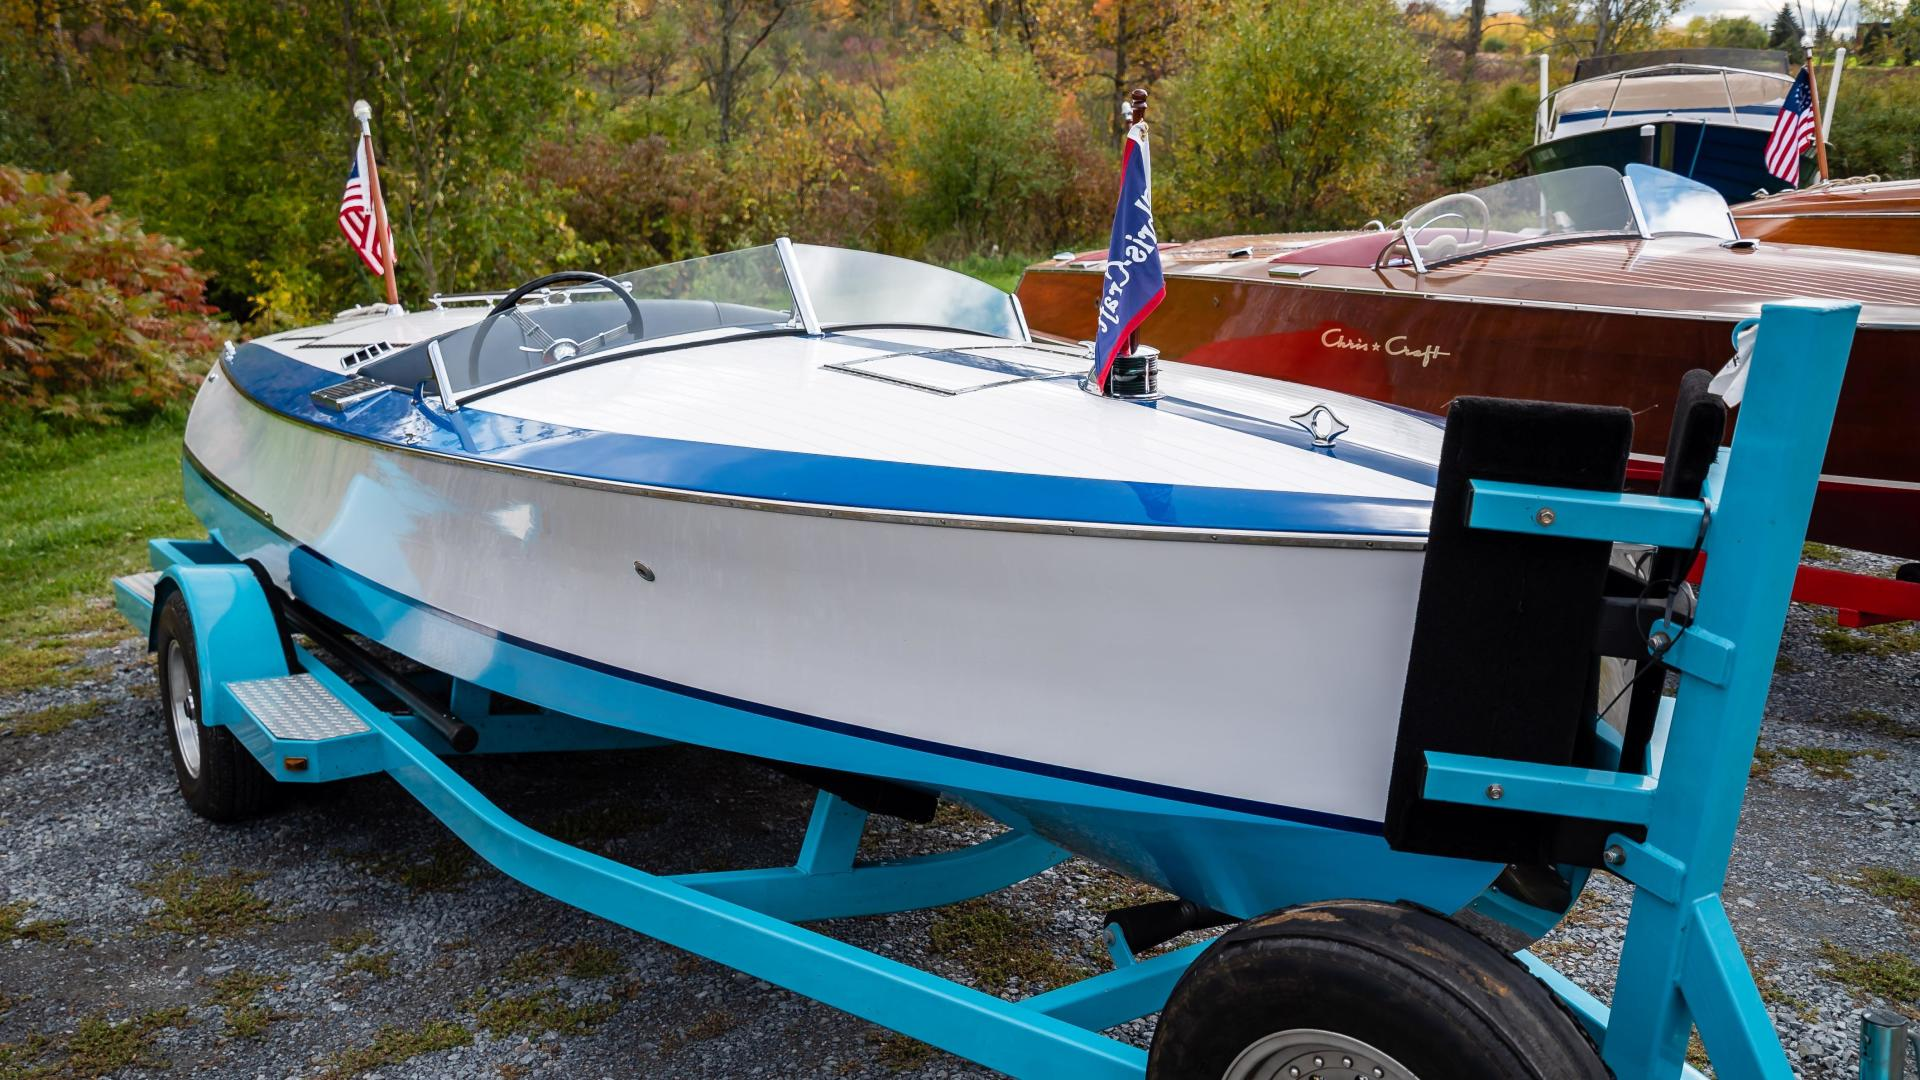 Chris-Craft-Special Race boat 1937 -Clayton-New York-United States-1546438 | Thumbnail